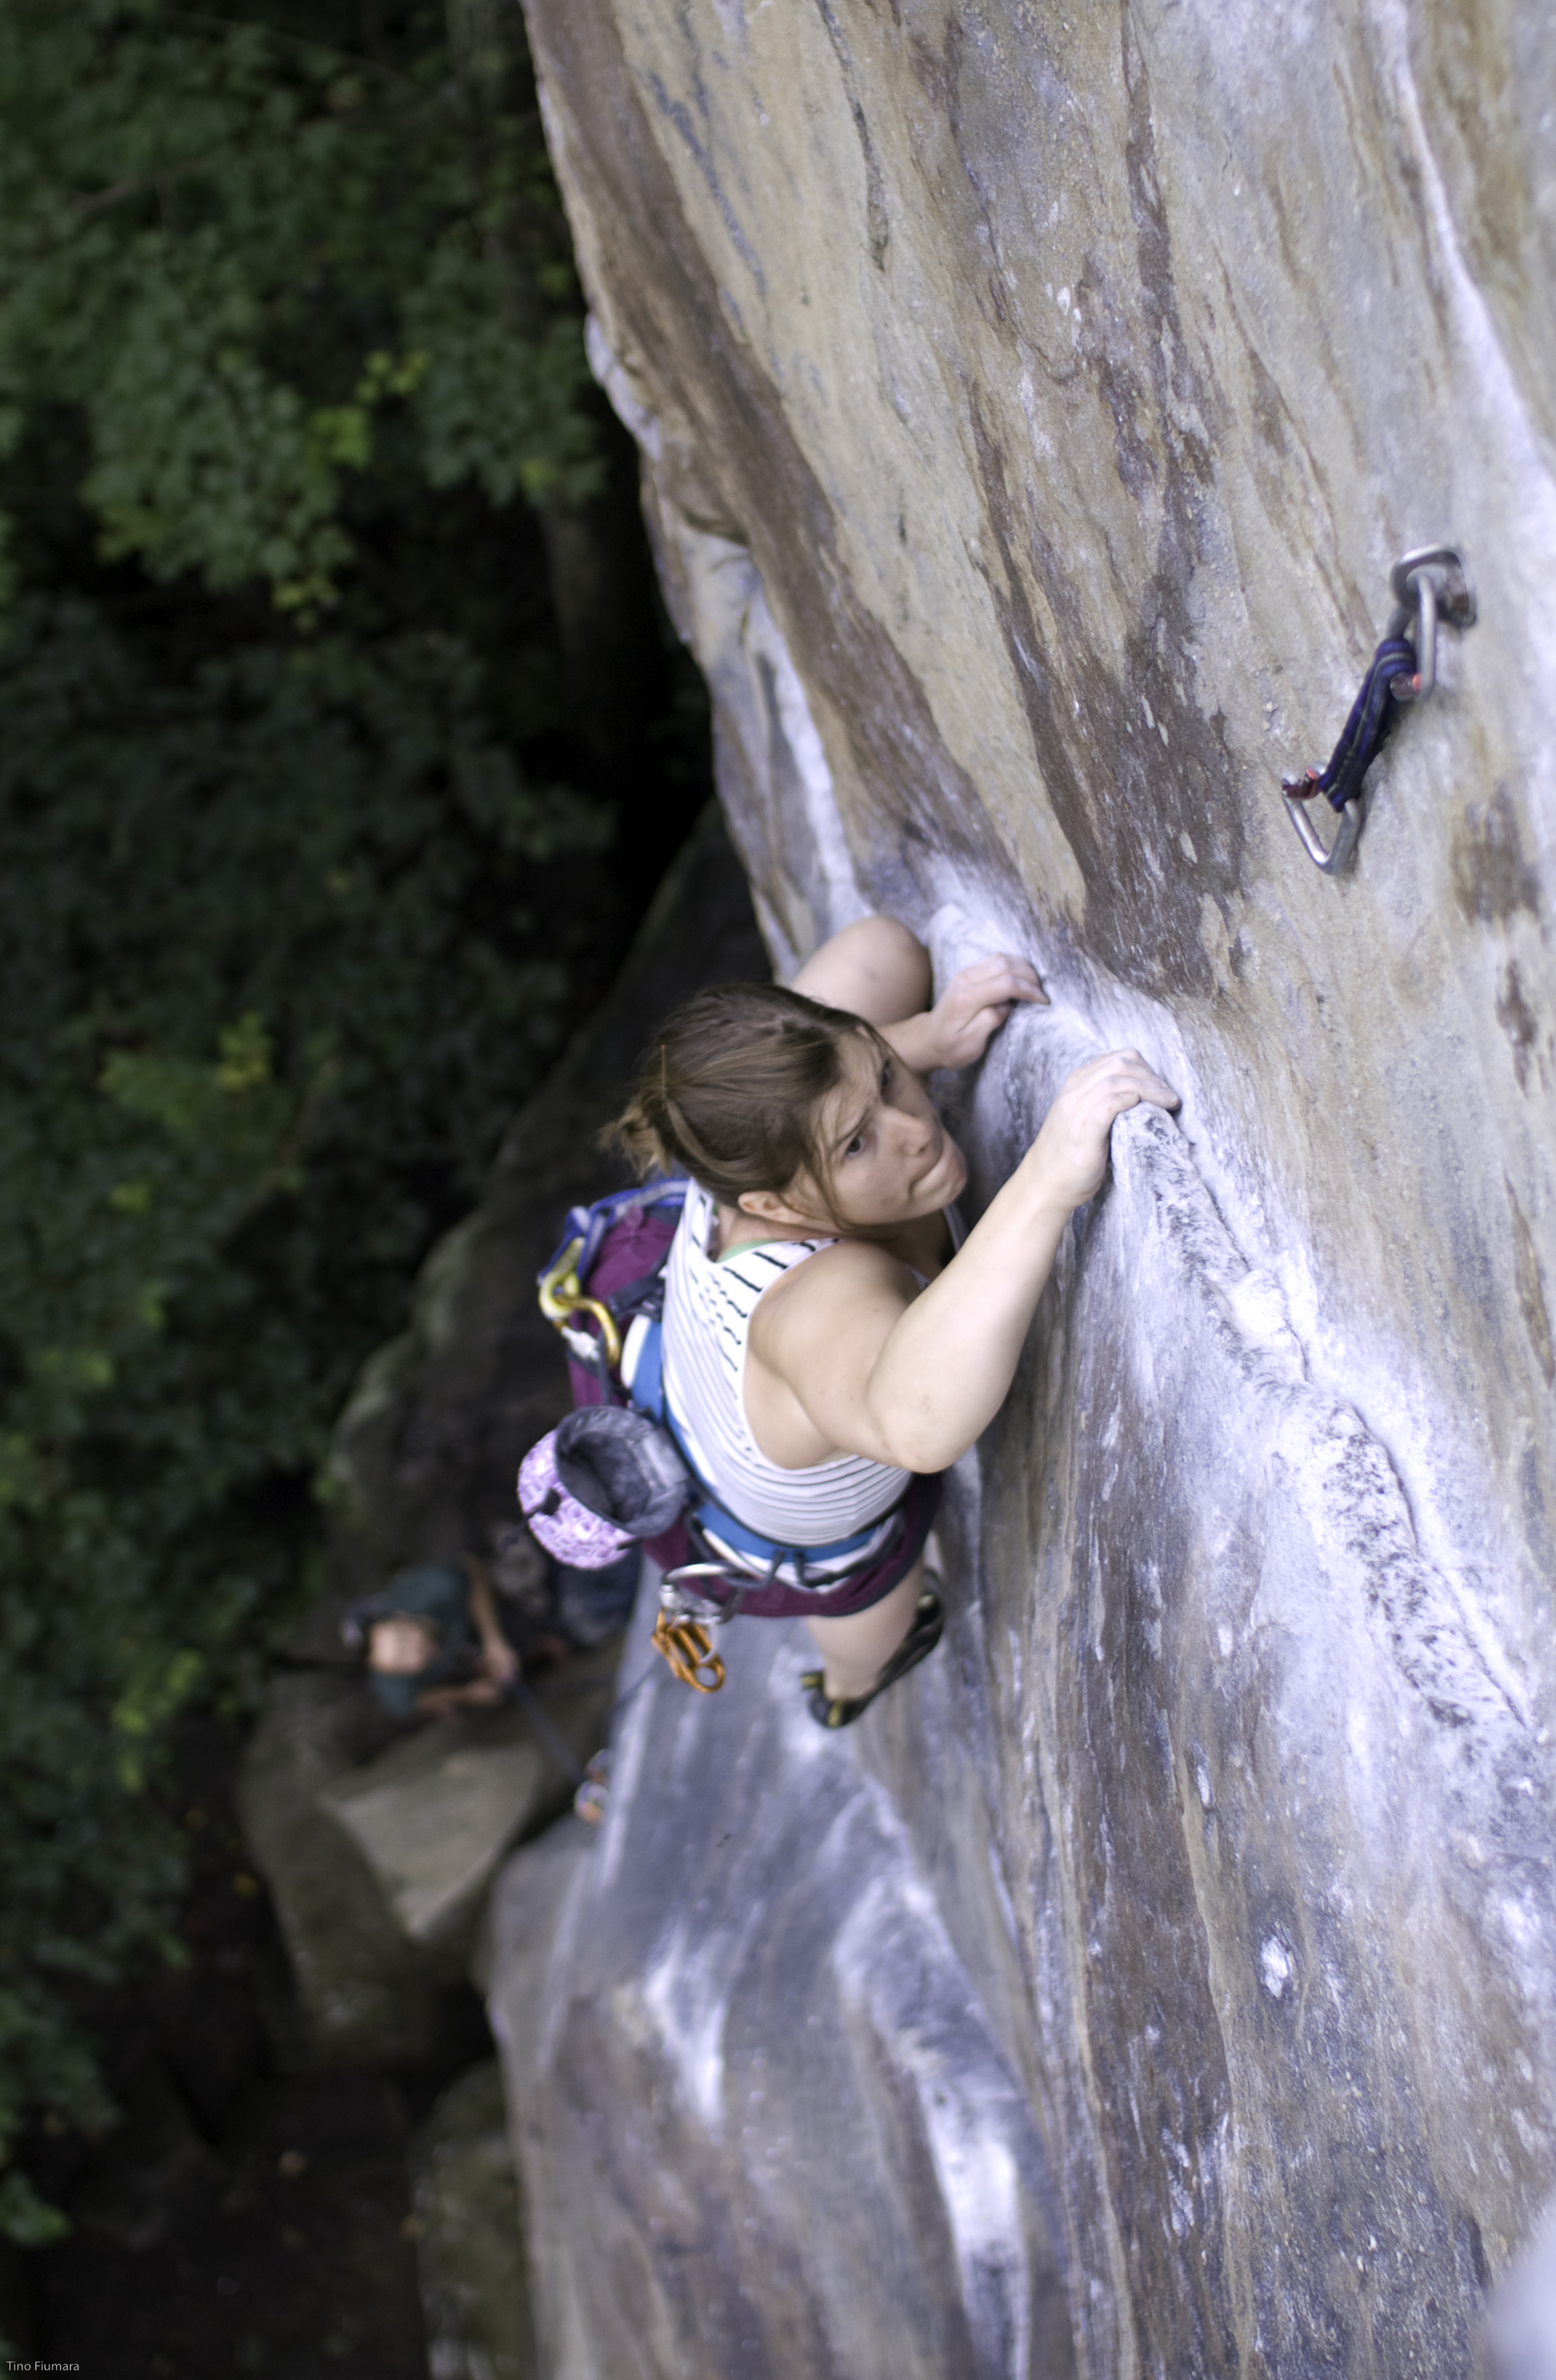 Local Access Alerts - Gunks 2018 Peregrine ClosureThe annual Gunks closure has been announced. For more information check out the Gunks Climbers' Coalition website.